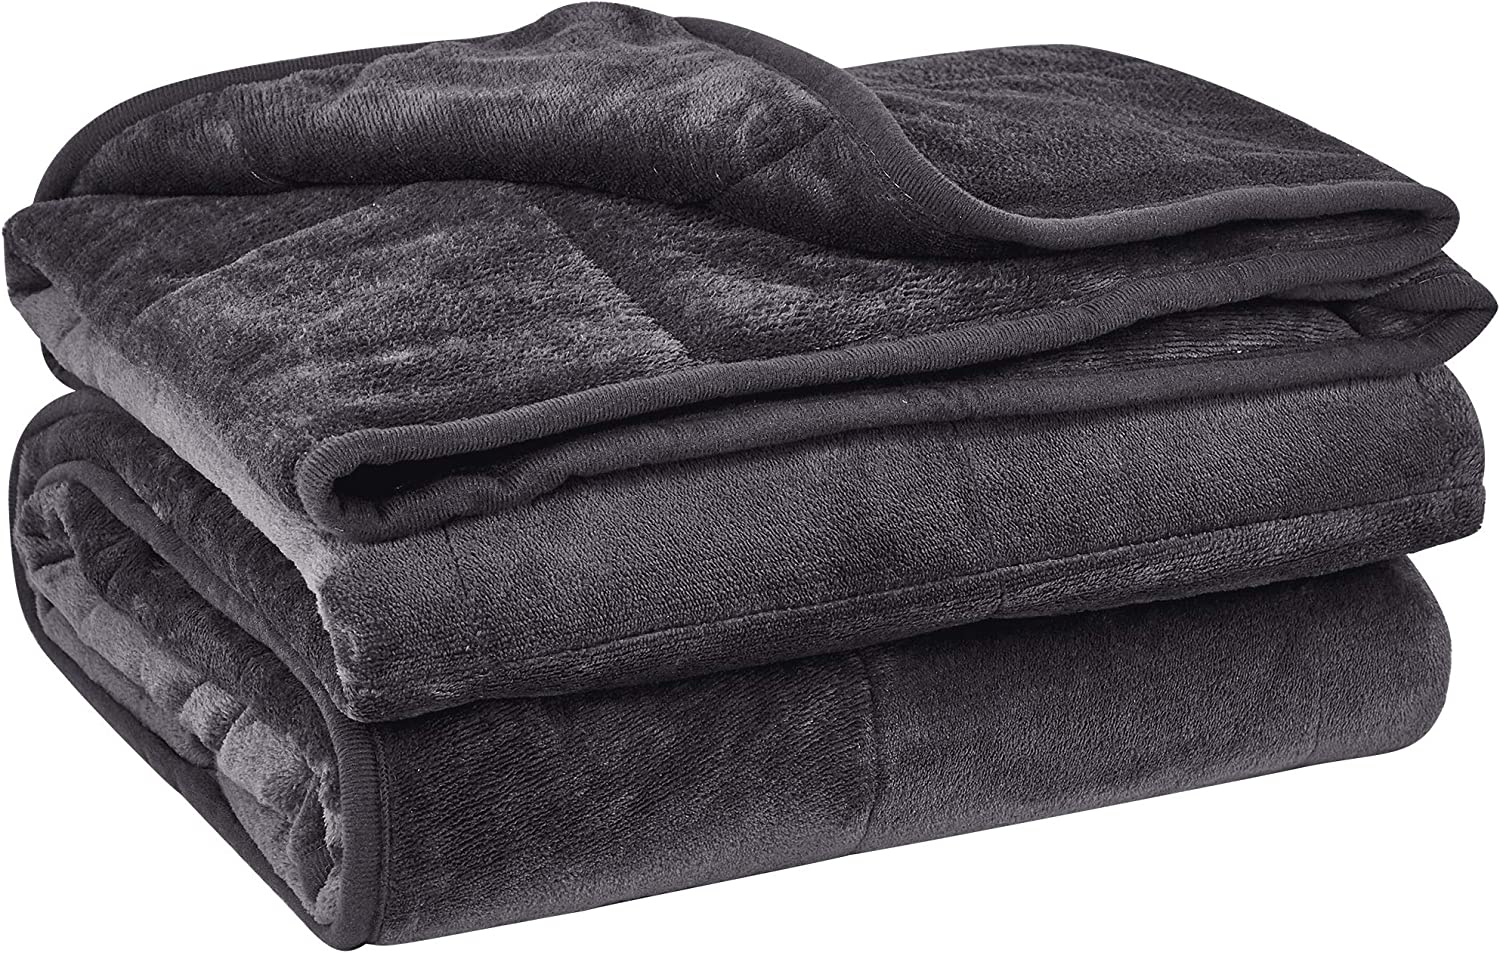 Puredown Cozy and Luxury Weighted Blanket for Adults, Youths Heavy Blanket with Glass Beads Flannel Shell Fabric Deliver Durability and Comfort 25 lbs 60  80  Dark Grey